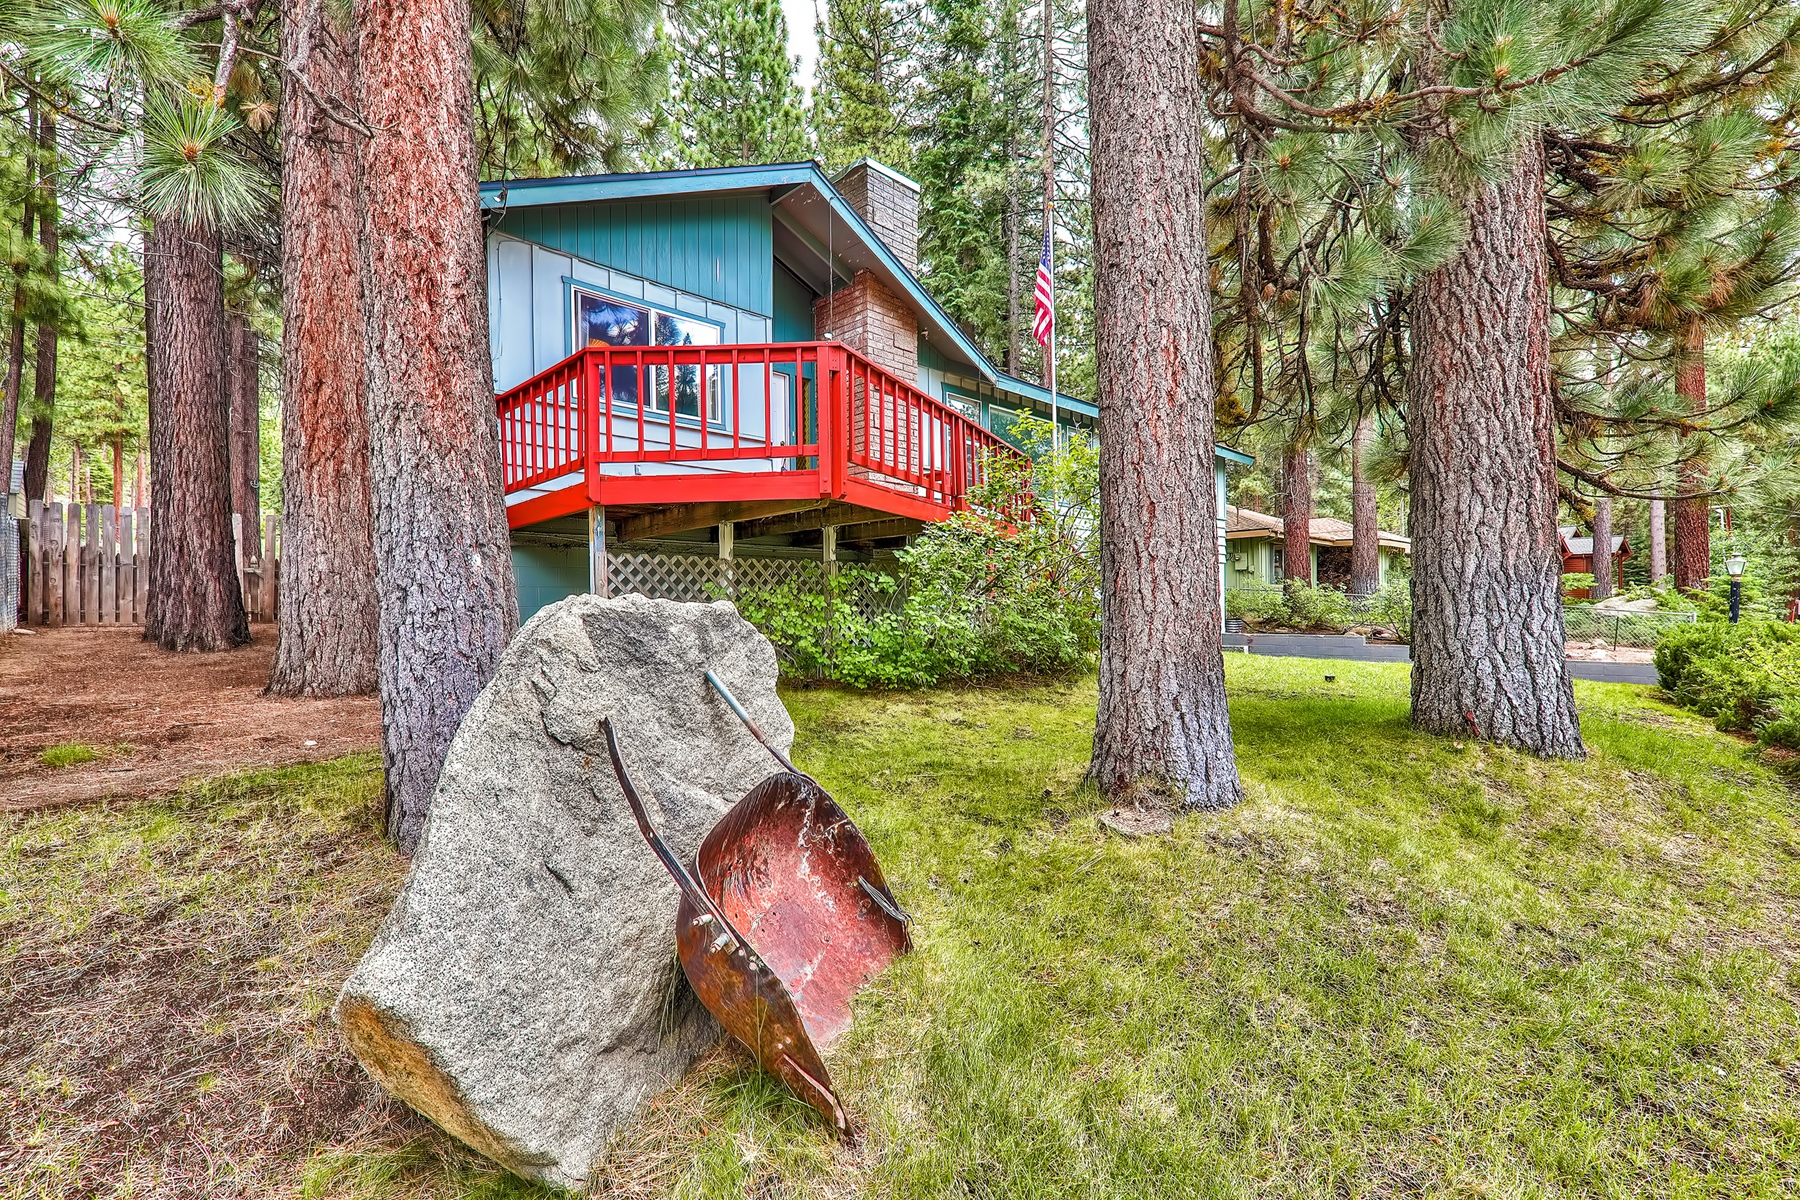 Property for Active at 3517 Bode Dr., South Lake Tahoe, CA 3517 Bode Dr. South Lake Tahoe, California 96150 United States